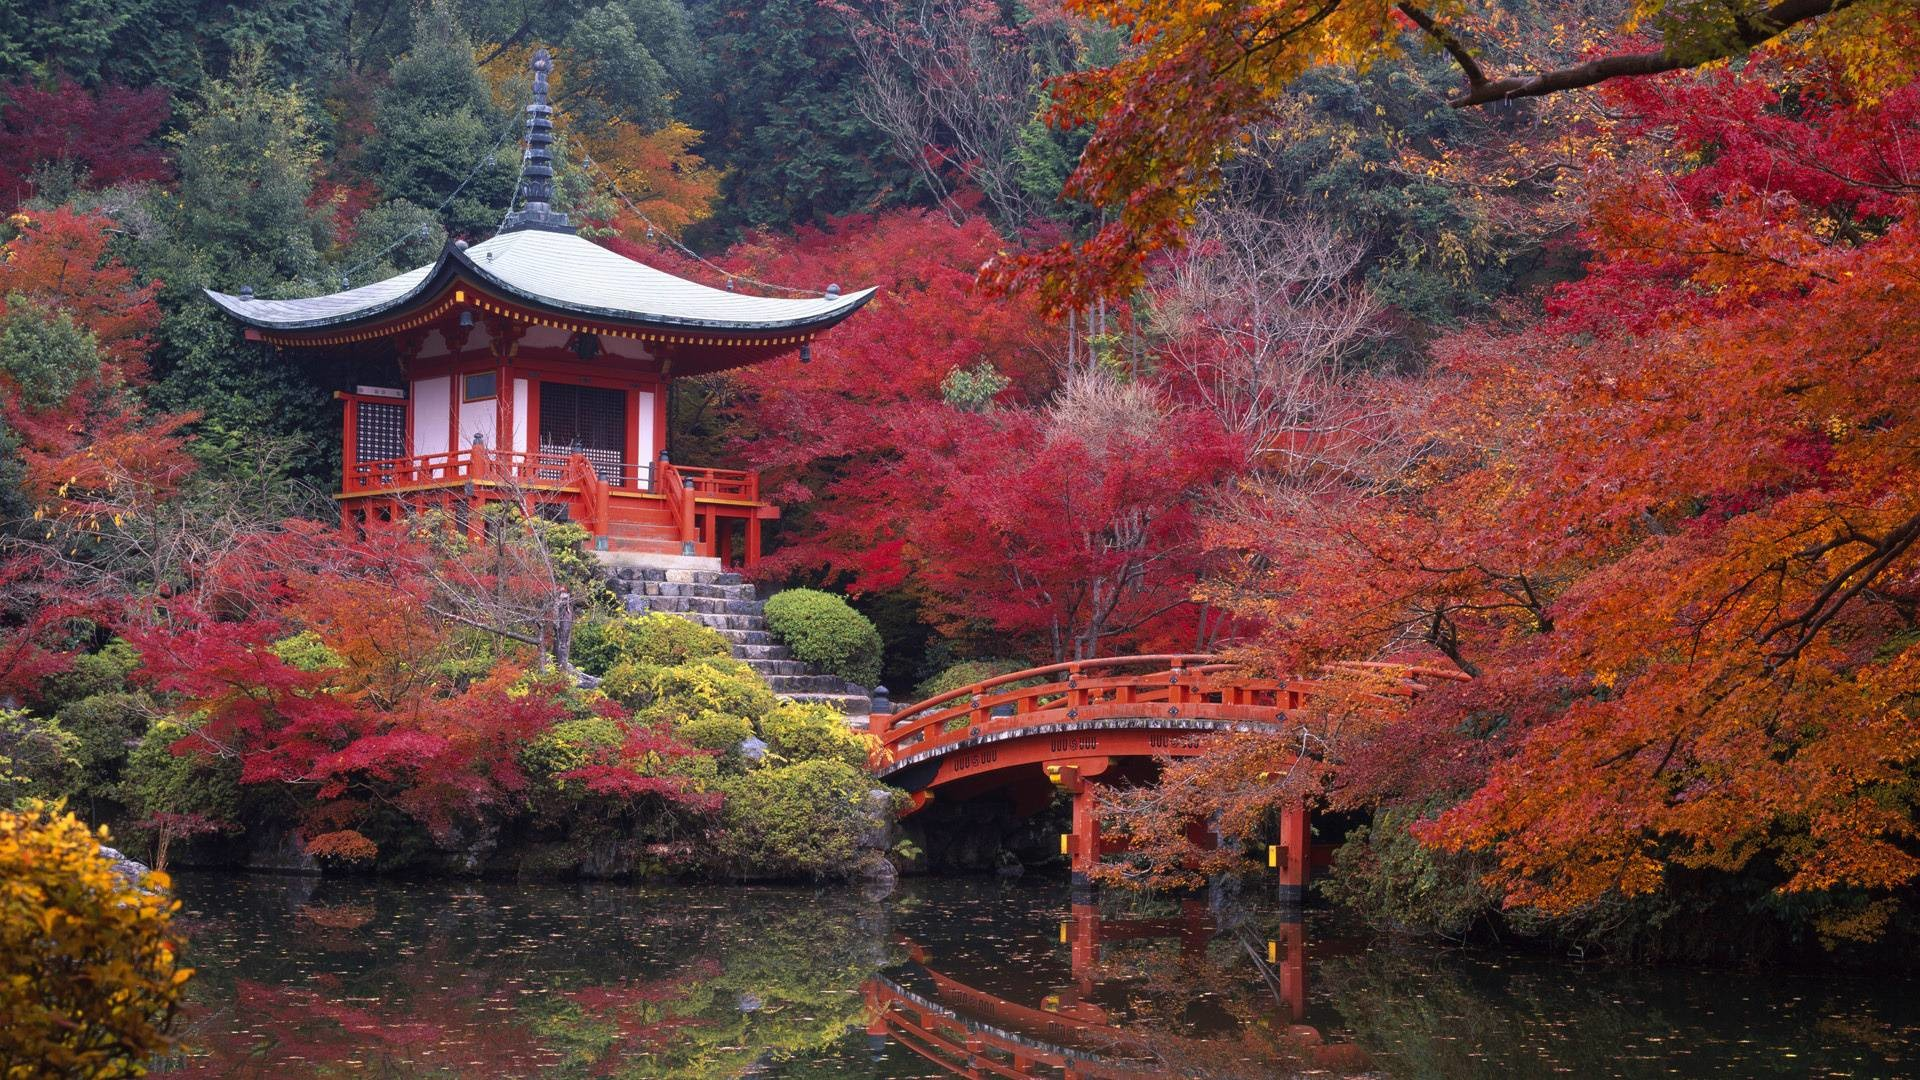 japan hd wallpapers windows wallpapers hd download free amazing background  images mac windows 10 1920×1080